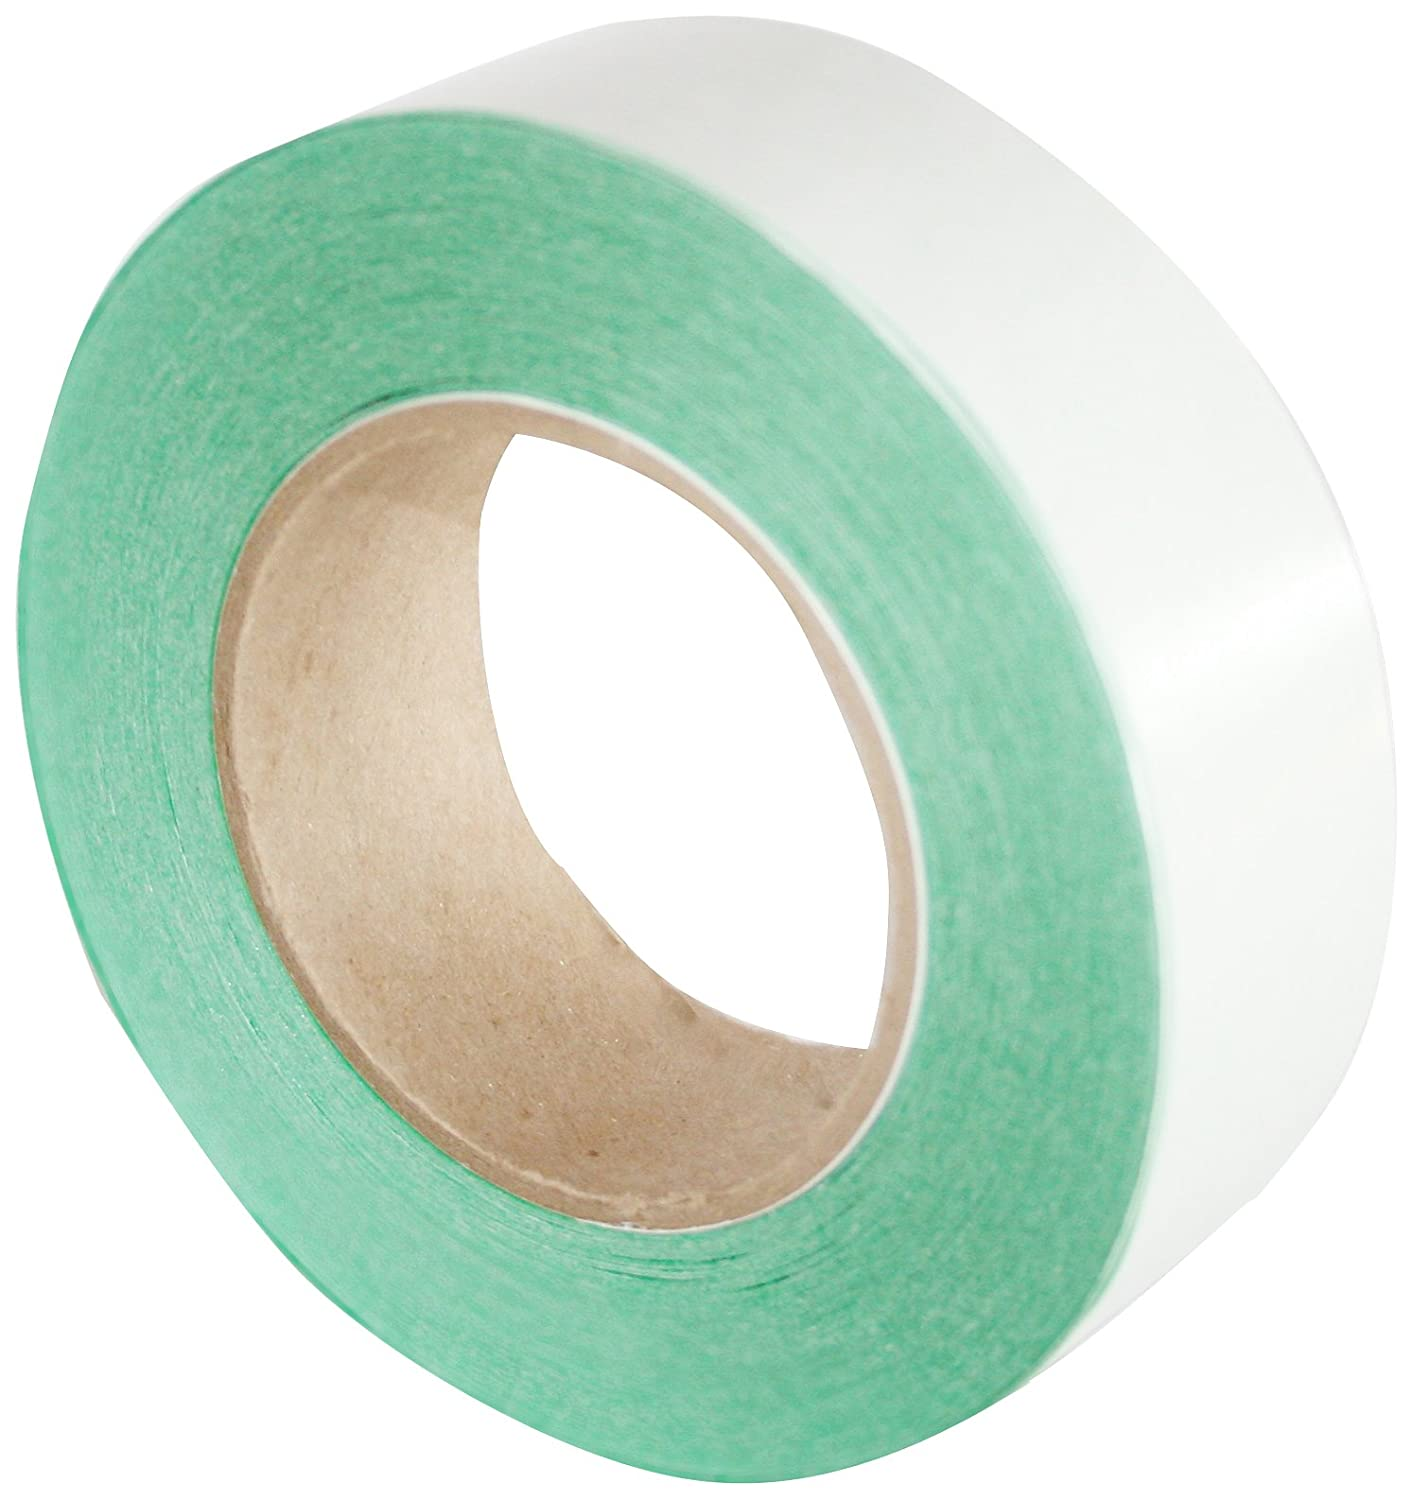 3 Core 1 1//2 Width 3 Core 909-0112 MAXI Maxi 909-0112 Aqua-Green Repulpable Splicing Tape Double Coated with Adhesive and Repulpable Liner 60 Yards Length 1 1//2 Width